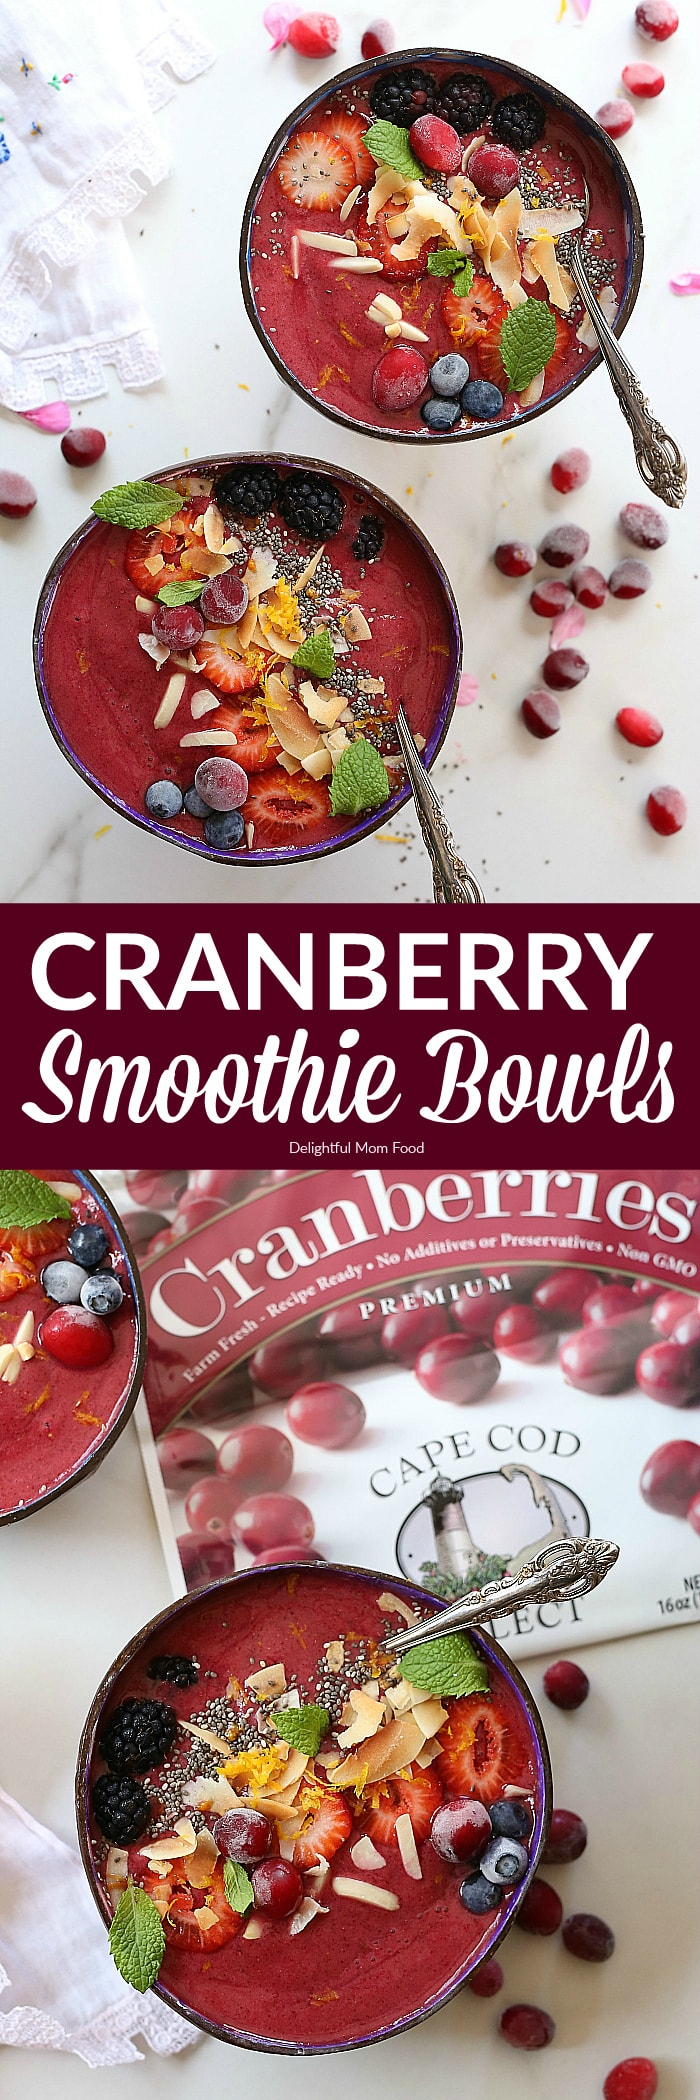 Cranberry Smoothie Bowl- Cranberries blended with zesty fresh orange juice and sweet berries makes this smoothie bowl a winning sweet morning treat! Enjoy it topped with a favorite granola or fresh fruit, chia seeds, toasted coconut and almond slivers for a bit of crunch! #cranberry #smoothie #bowl #recipe #healthy #dairyfree #vegan #glutenfree #healthy #fruit #berry #ad | Recipe at delightfulmomfood.com